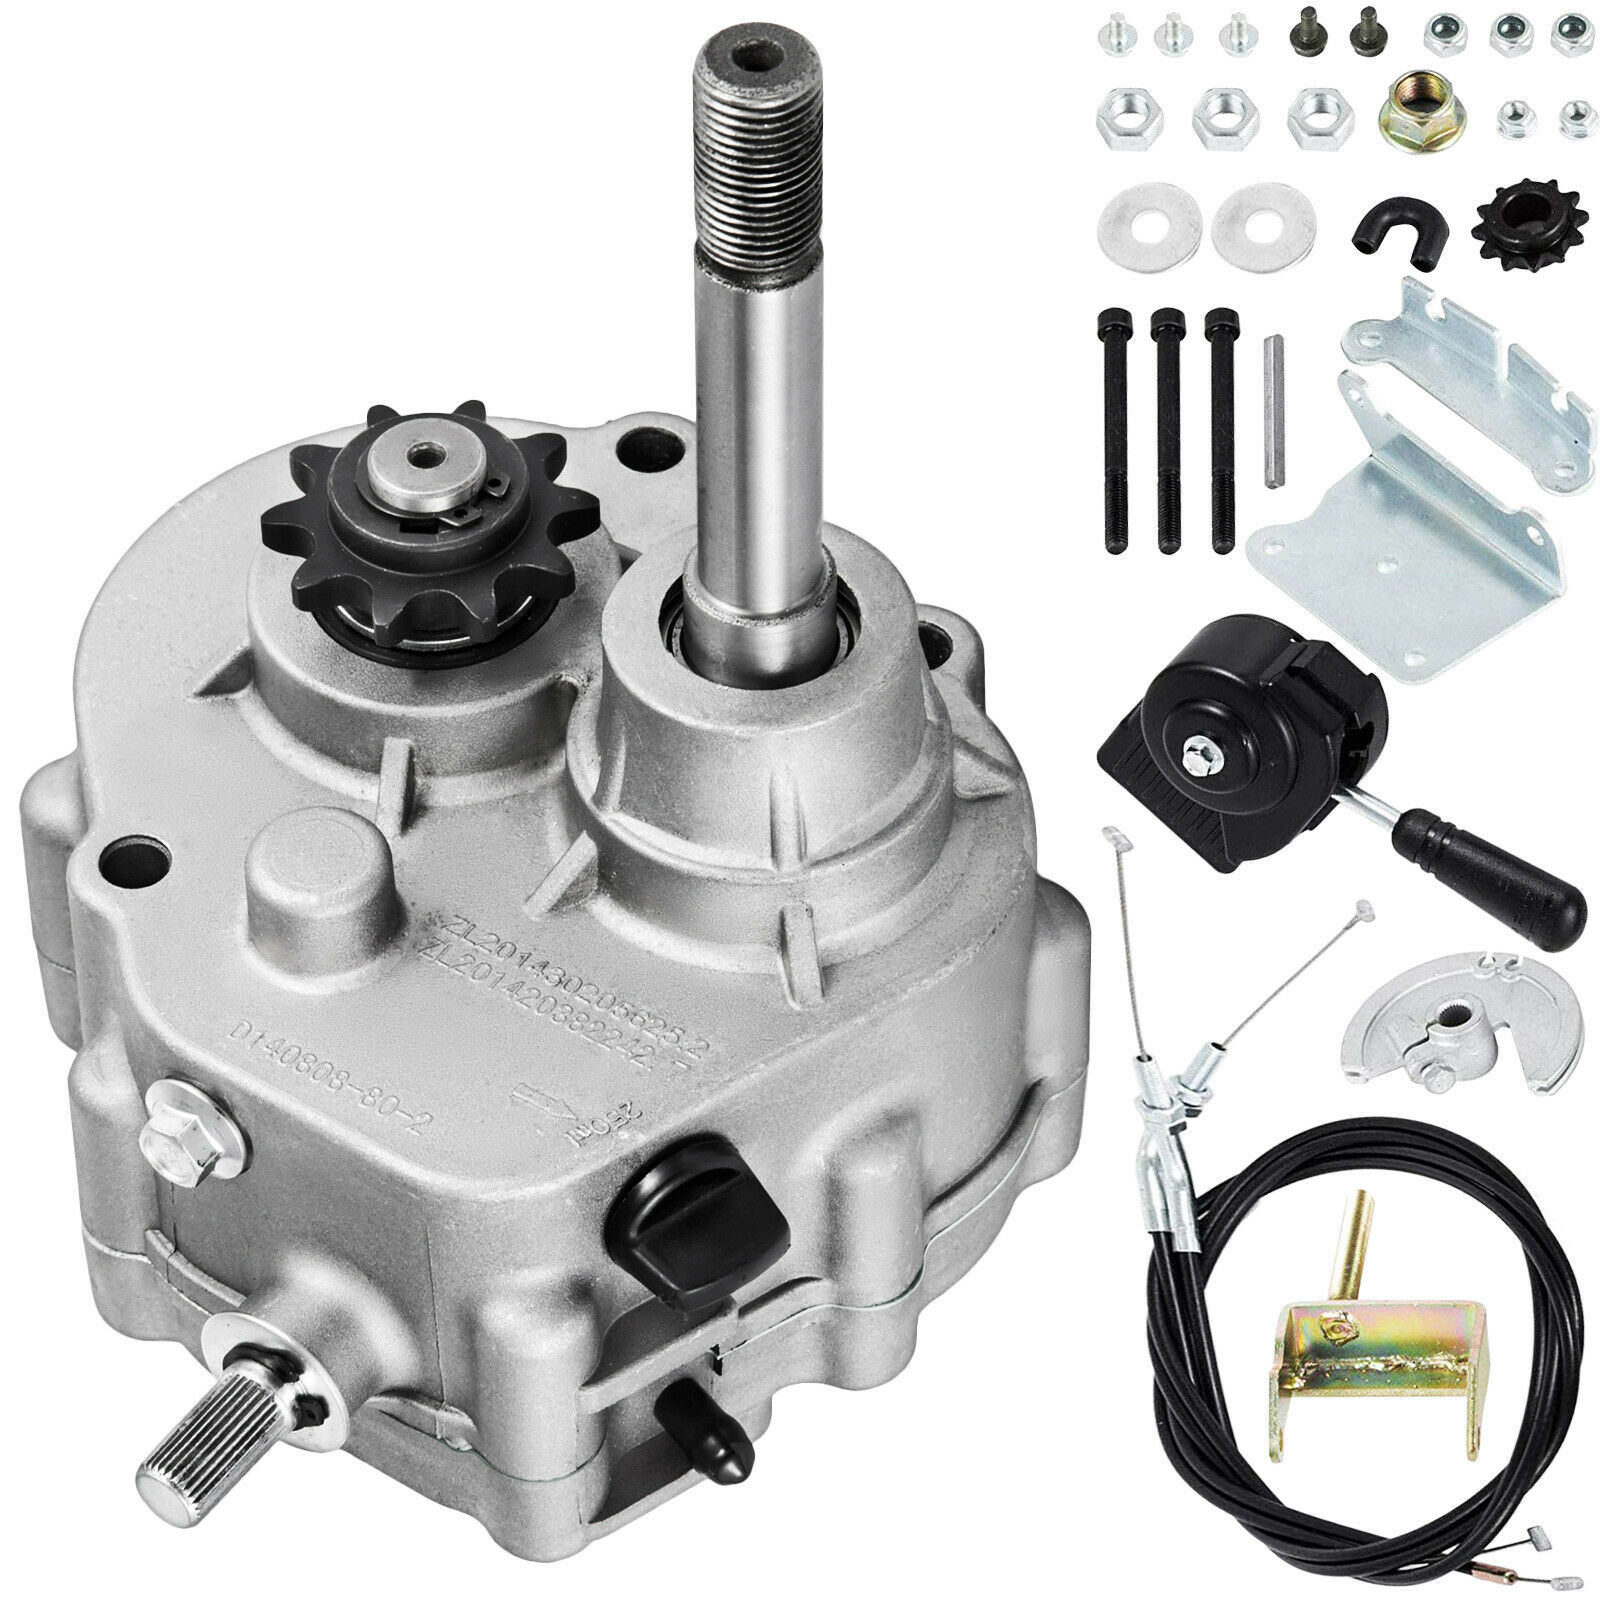 Go Kart Forward Reverse Gear Box Fits 2hp 13hp Engine Transmission Comet Torque Converter Off Road Local Honor 1 Of 12only 0 Available